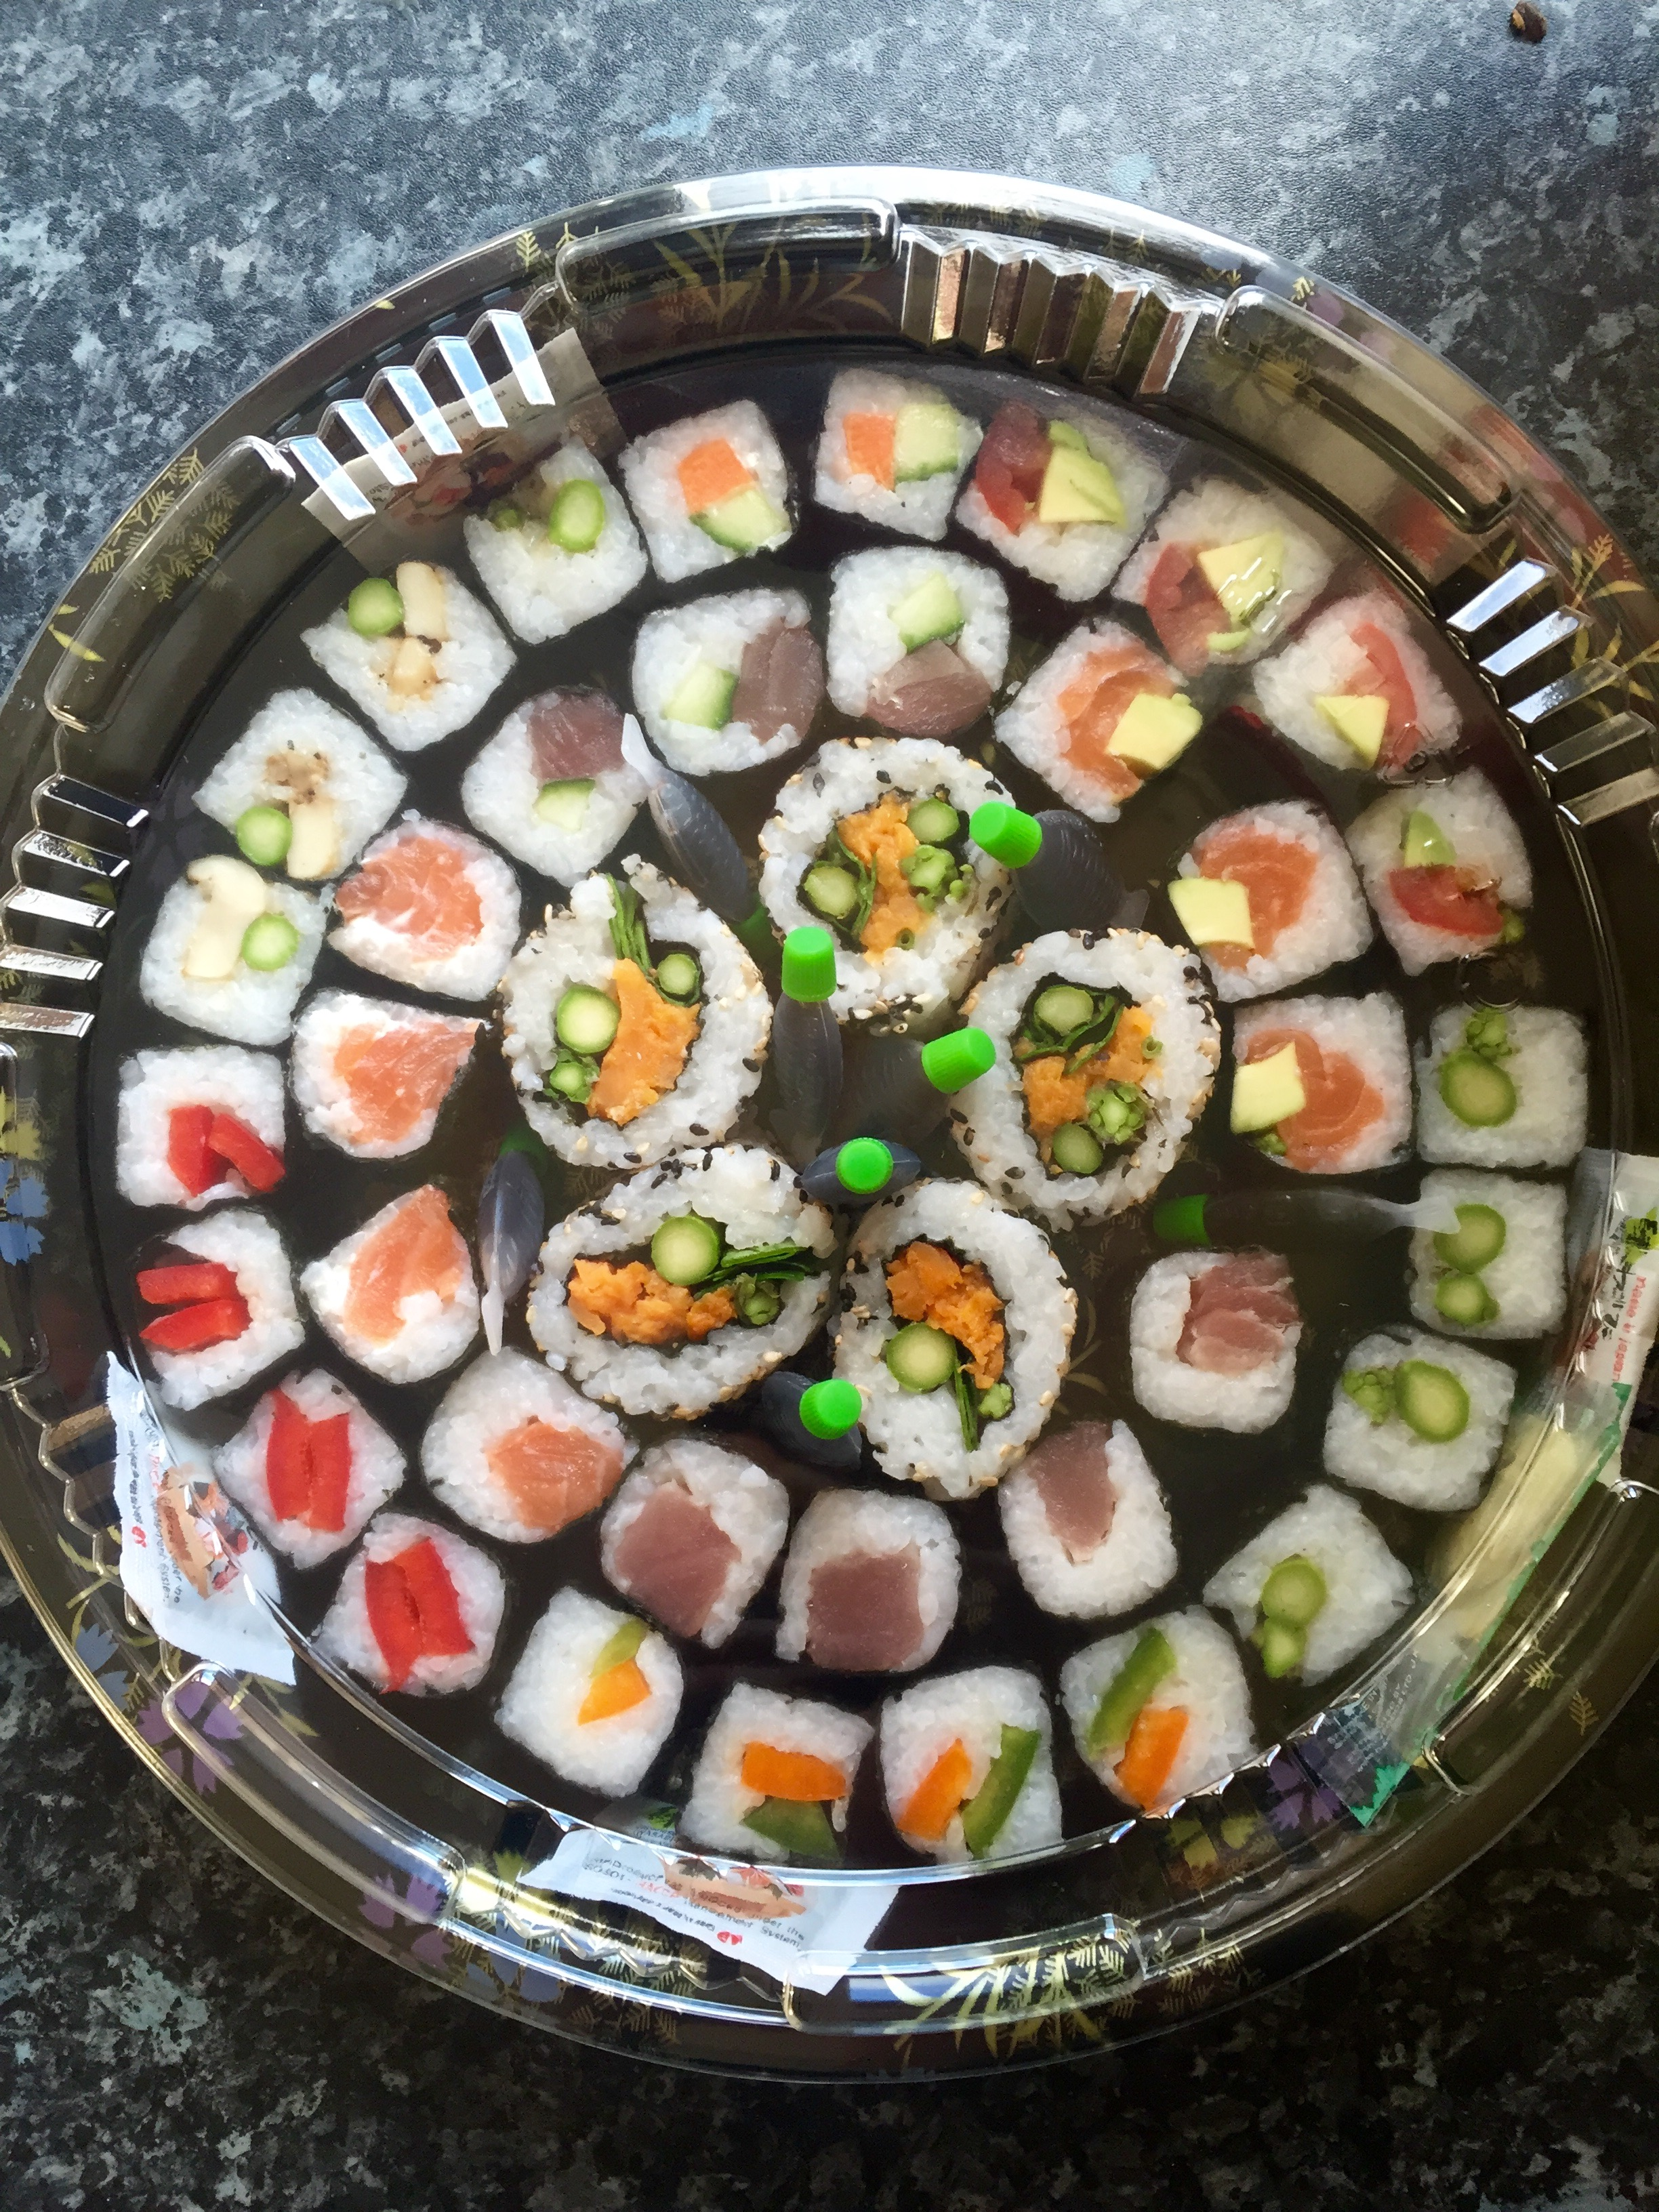 THE CLASSIC MIXED SUSHI PLATTER - £25   Includes a range of vegetarian and fish sushi options.